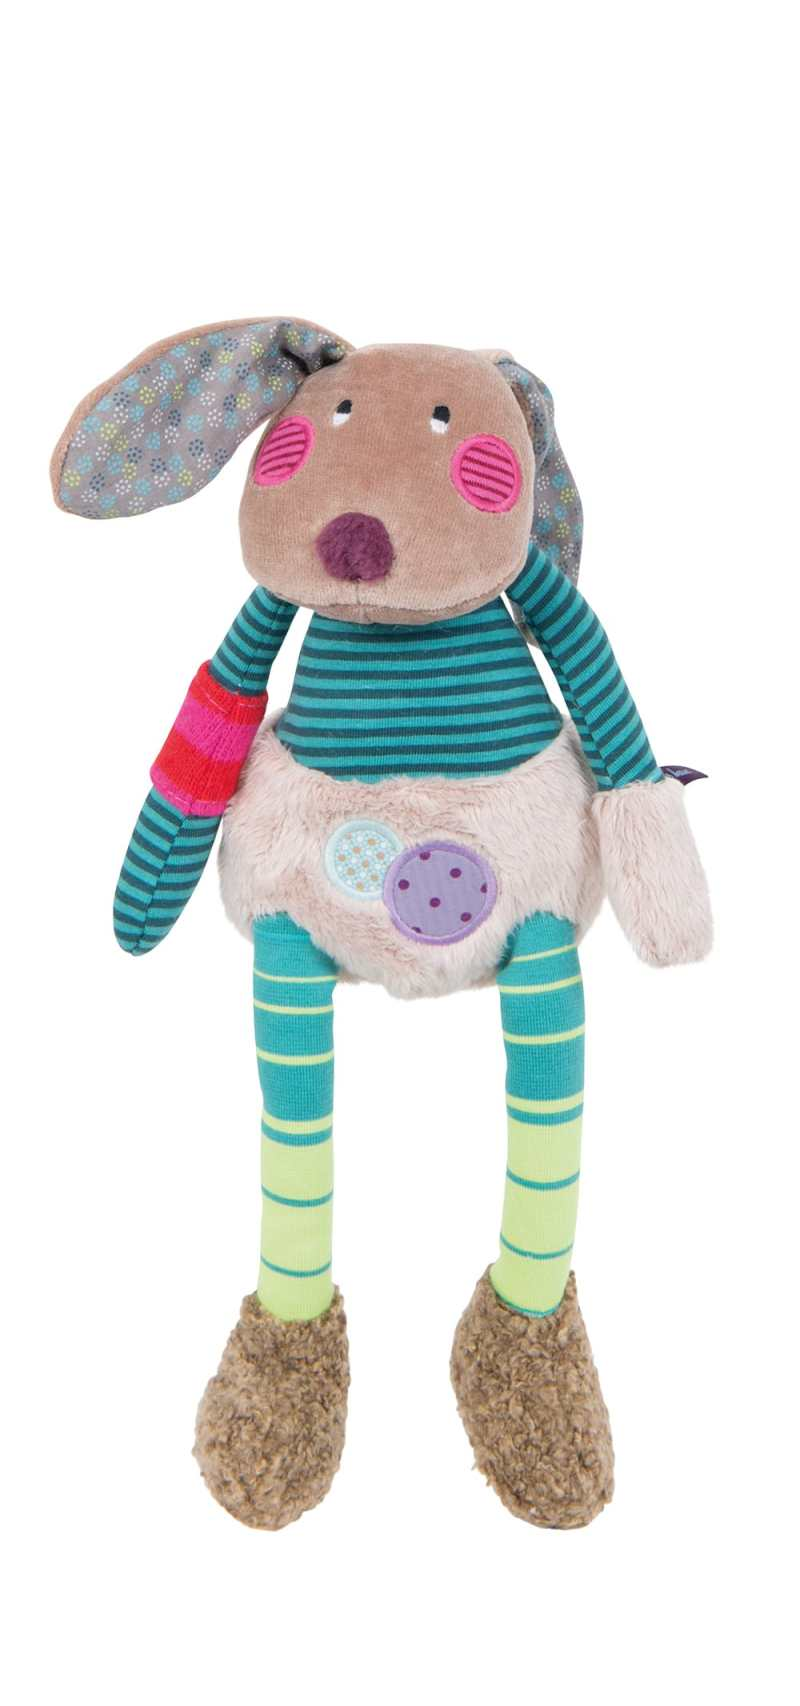 rabbit plush toy - jolis pas beaux from moulin roty with quirky mix of neutral colours and fabrics